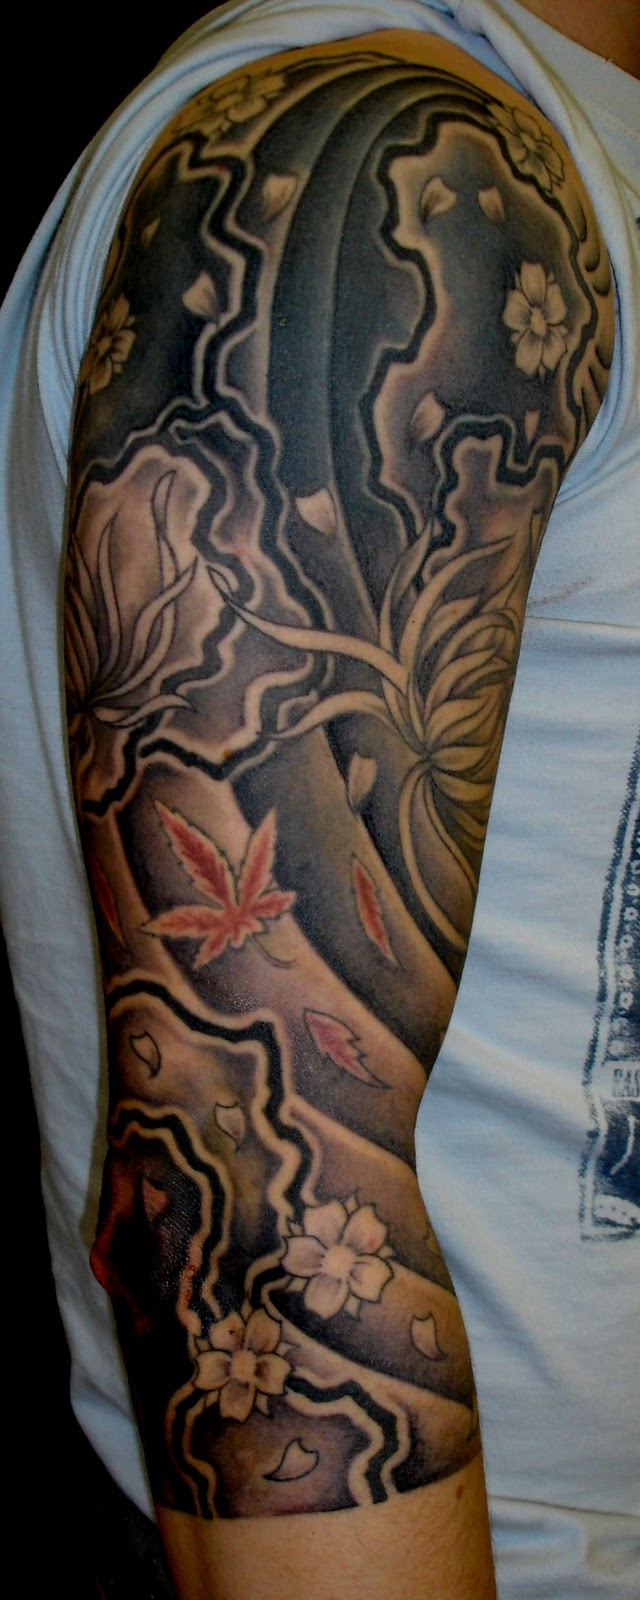 Tattoo Ideas Men Sleeve: Tattoos For Men 2011: Japanese Sleeve Tattoos